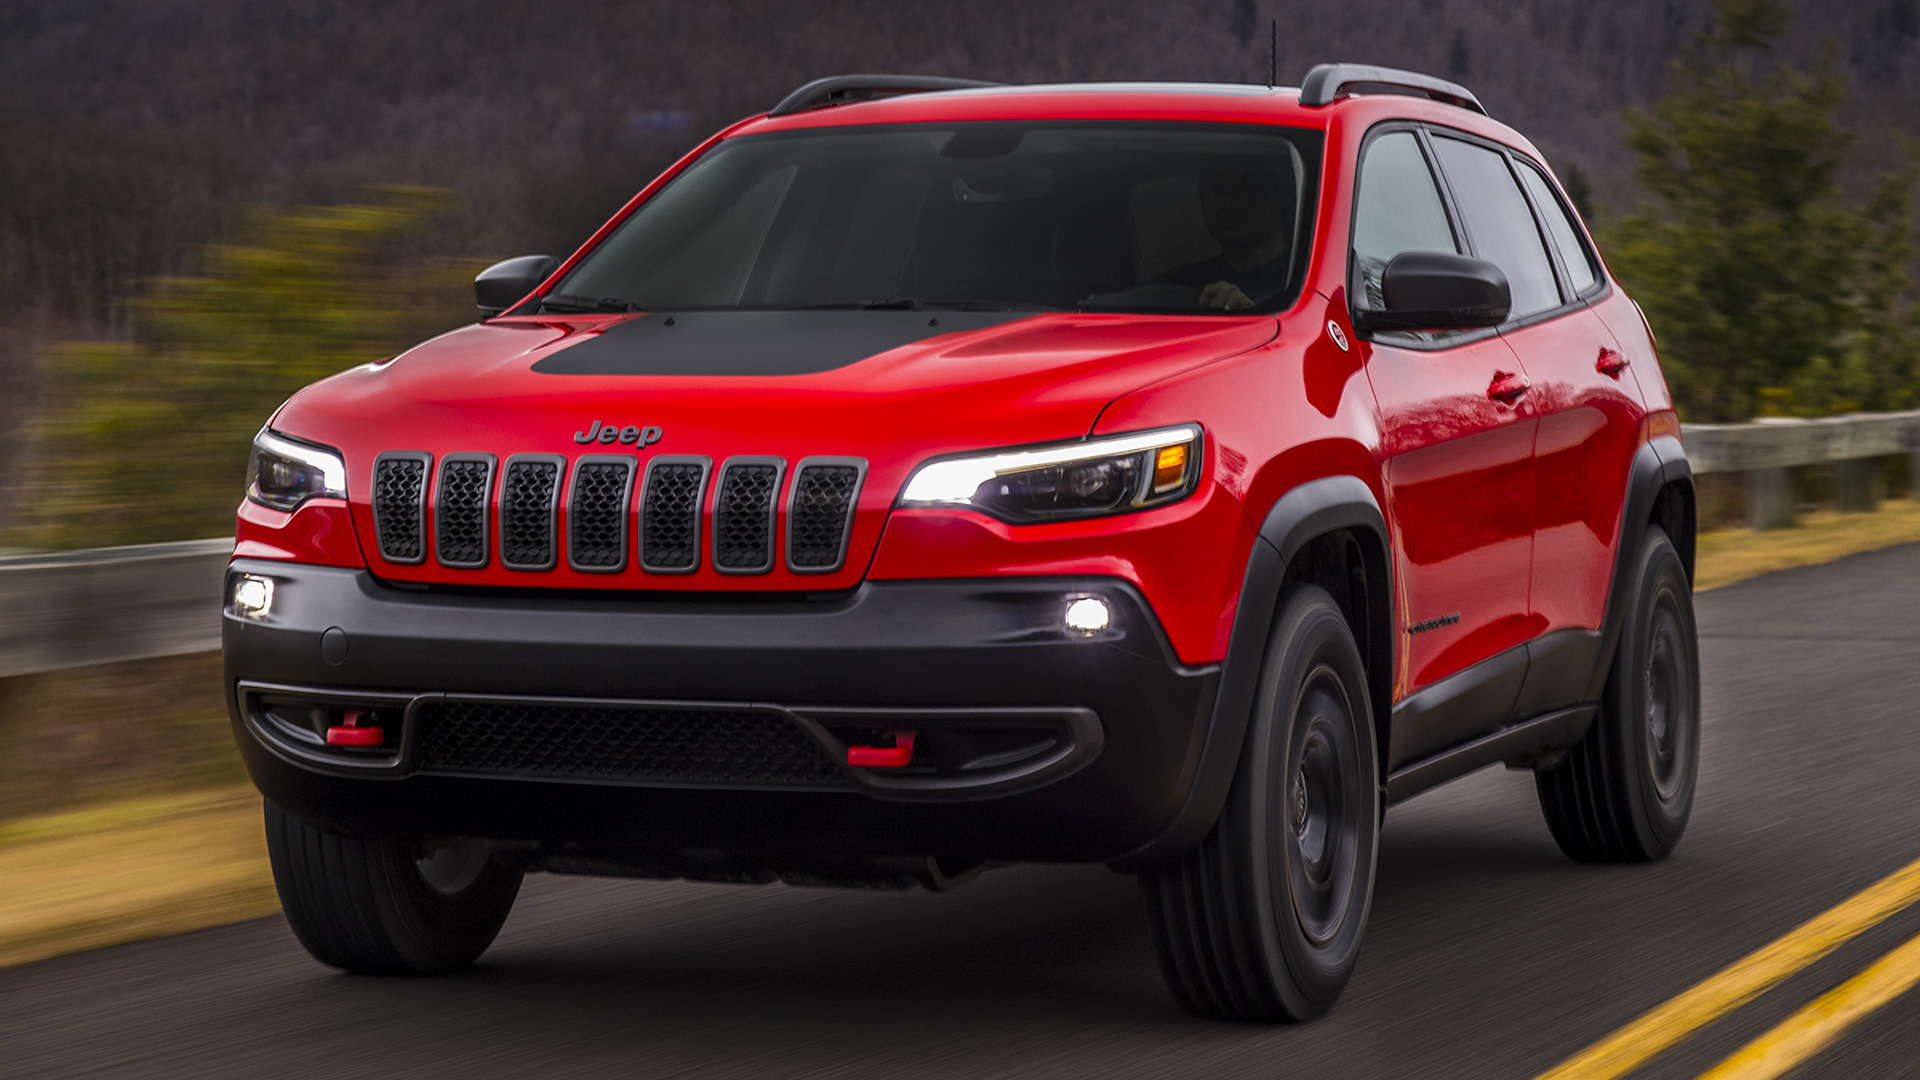 2018 Jeep Cherokee Trailhawk - Wallpapers and HD Images | Car Pixel